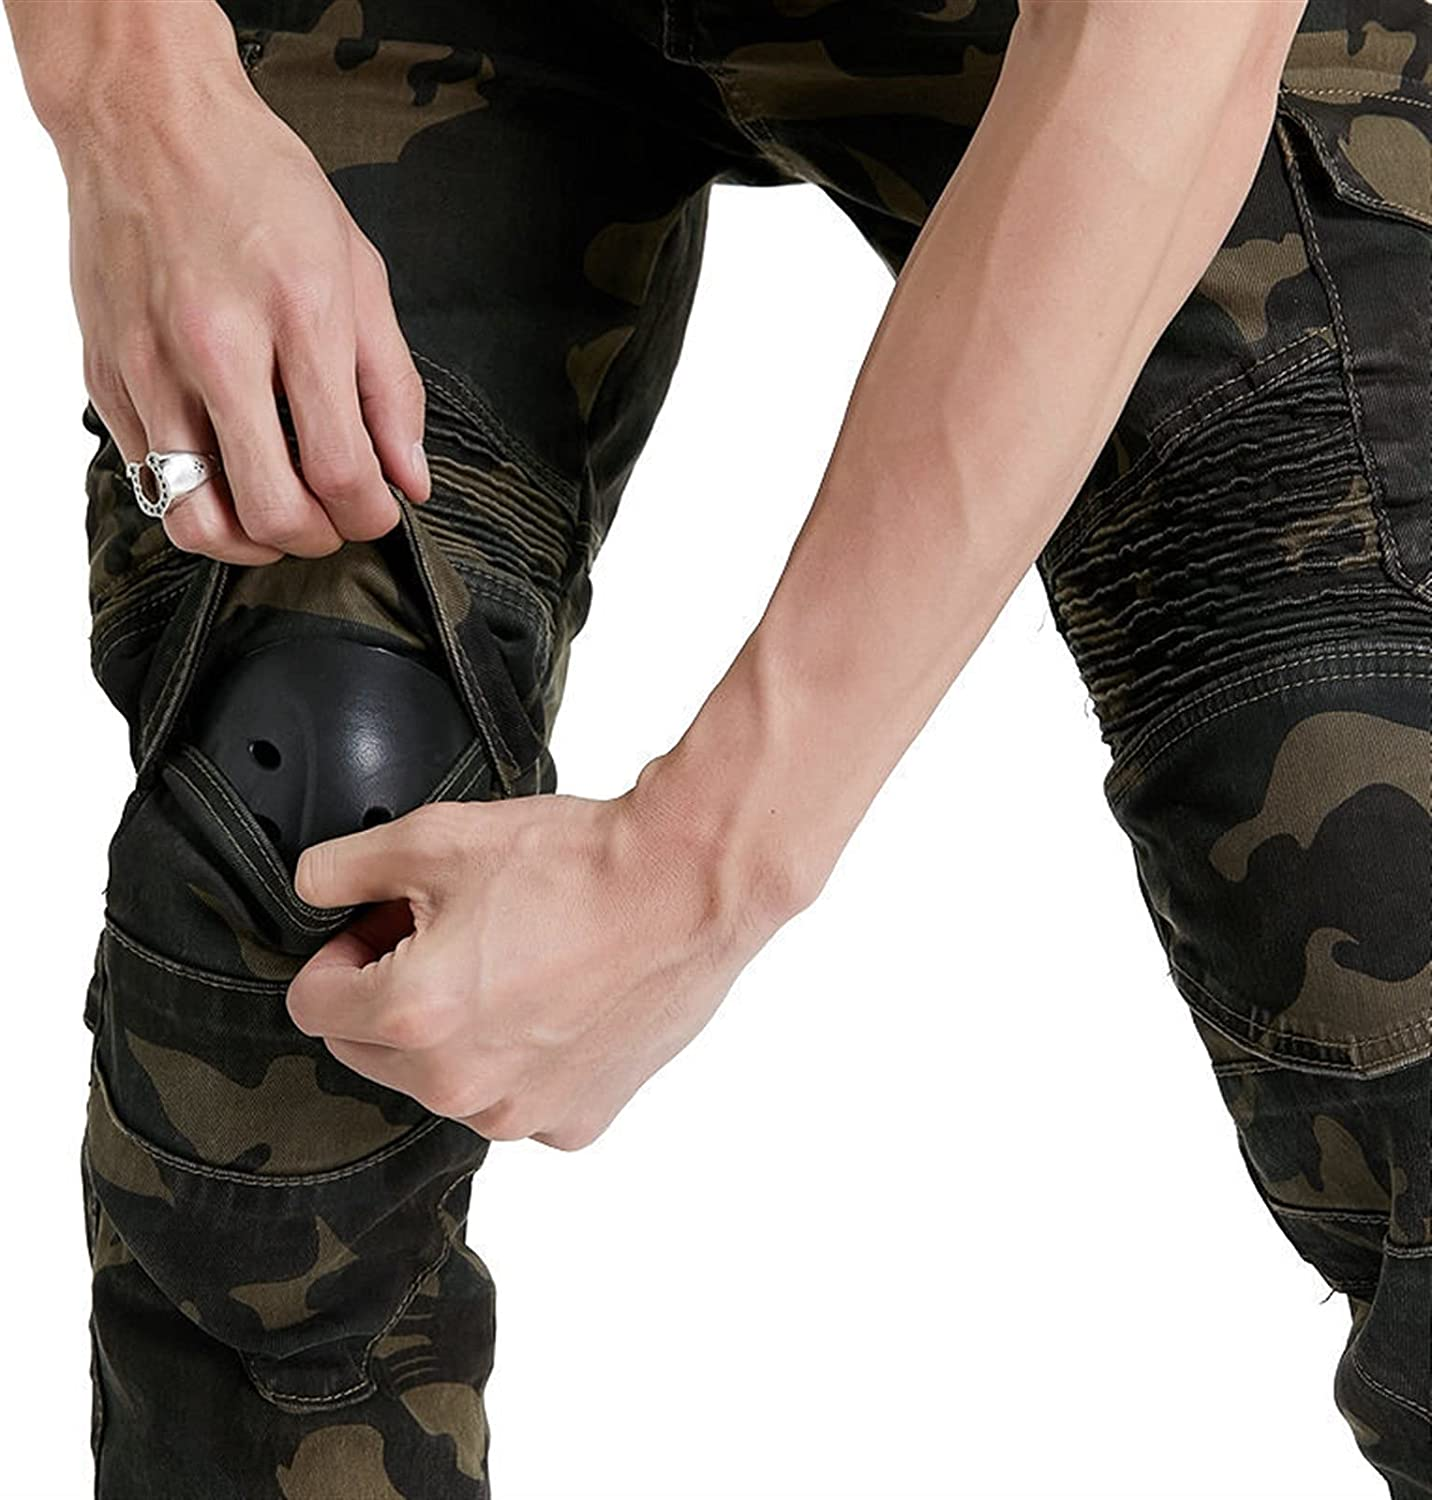 NEWPITE Cargo Max Now free shipping 86% OFF Reinforced by Aramid Urban Protective Camo Lining